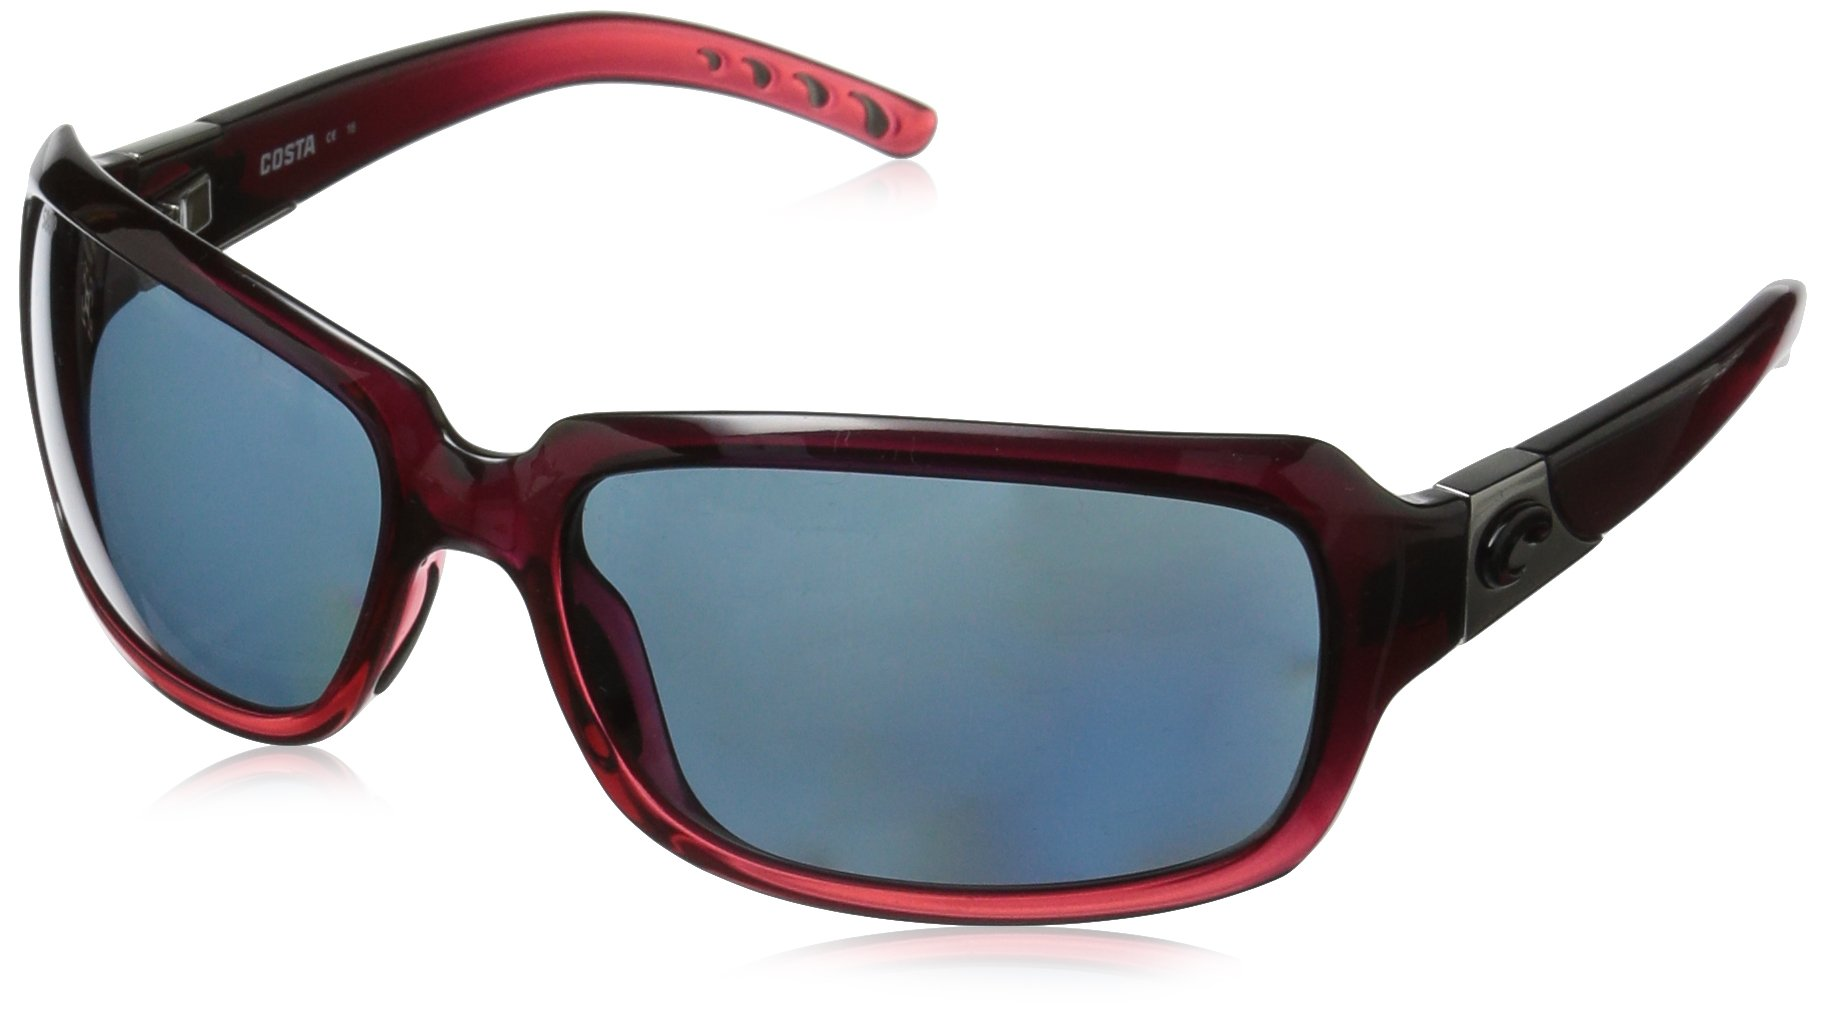 Costa del Mar Women's Isabela IB 48 OGP Polarized Oval Sunglasses, Pomegranate Fade, 63.2 mm